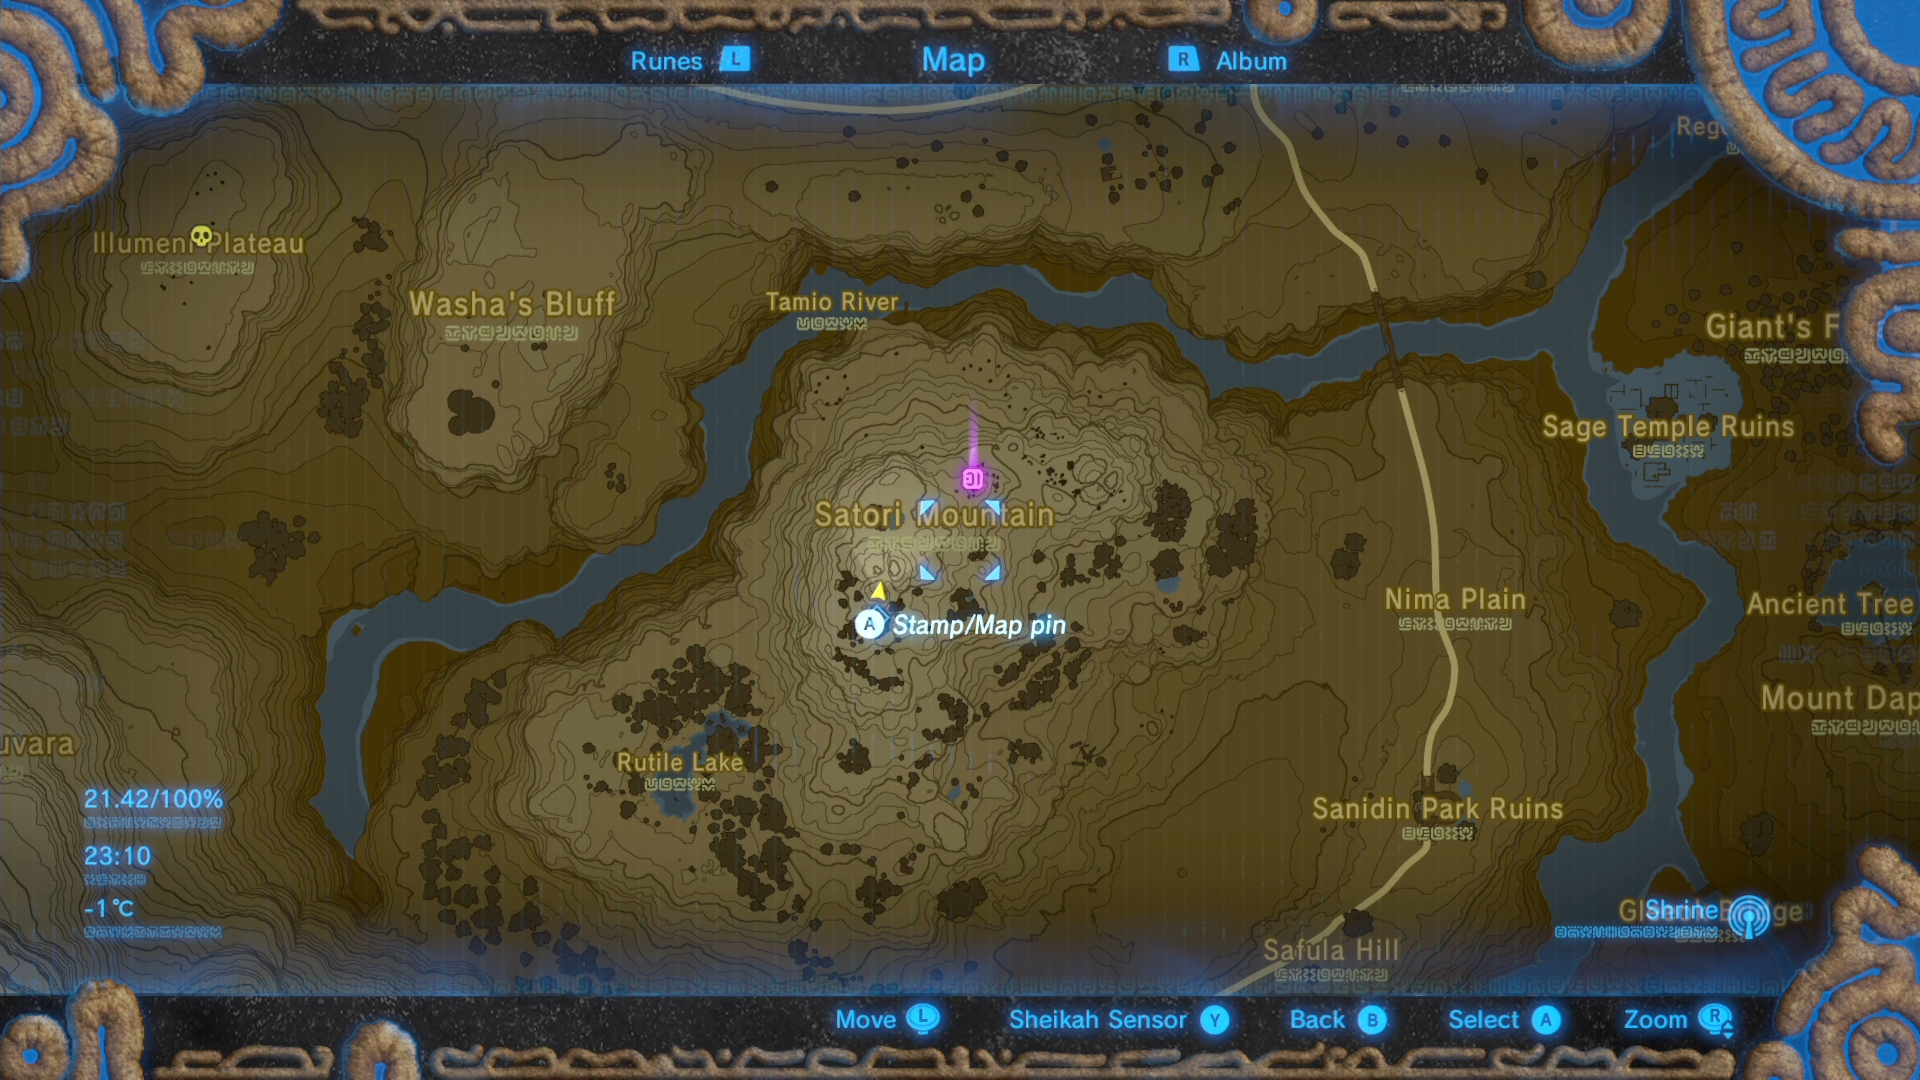 The Legend Of Zelda Breath Of The Wild Guide How To Find